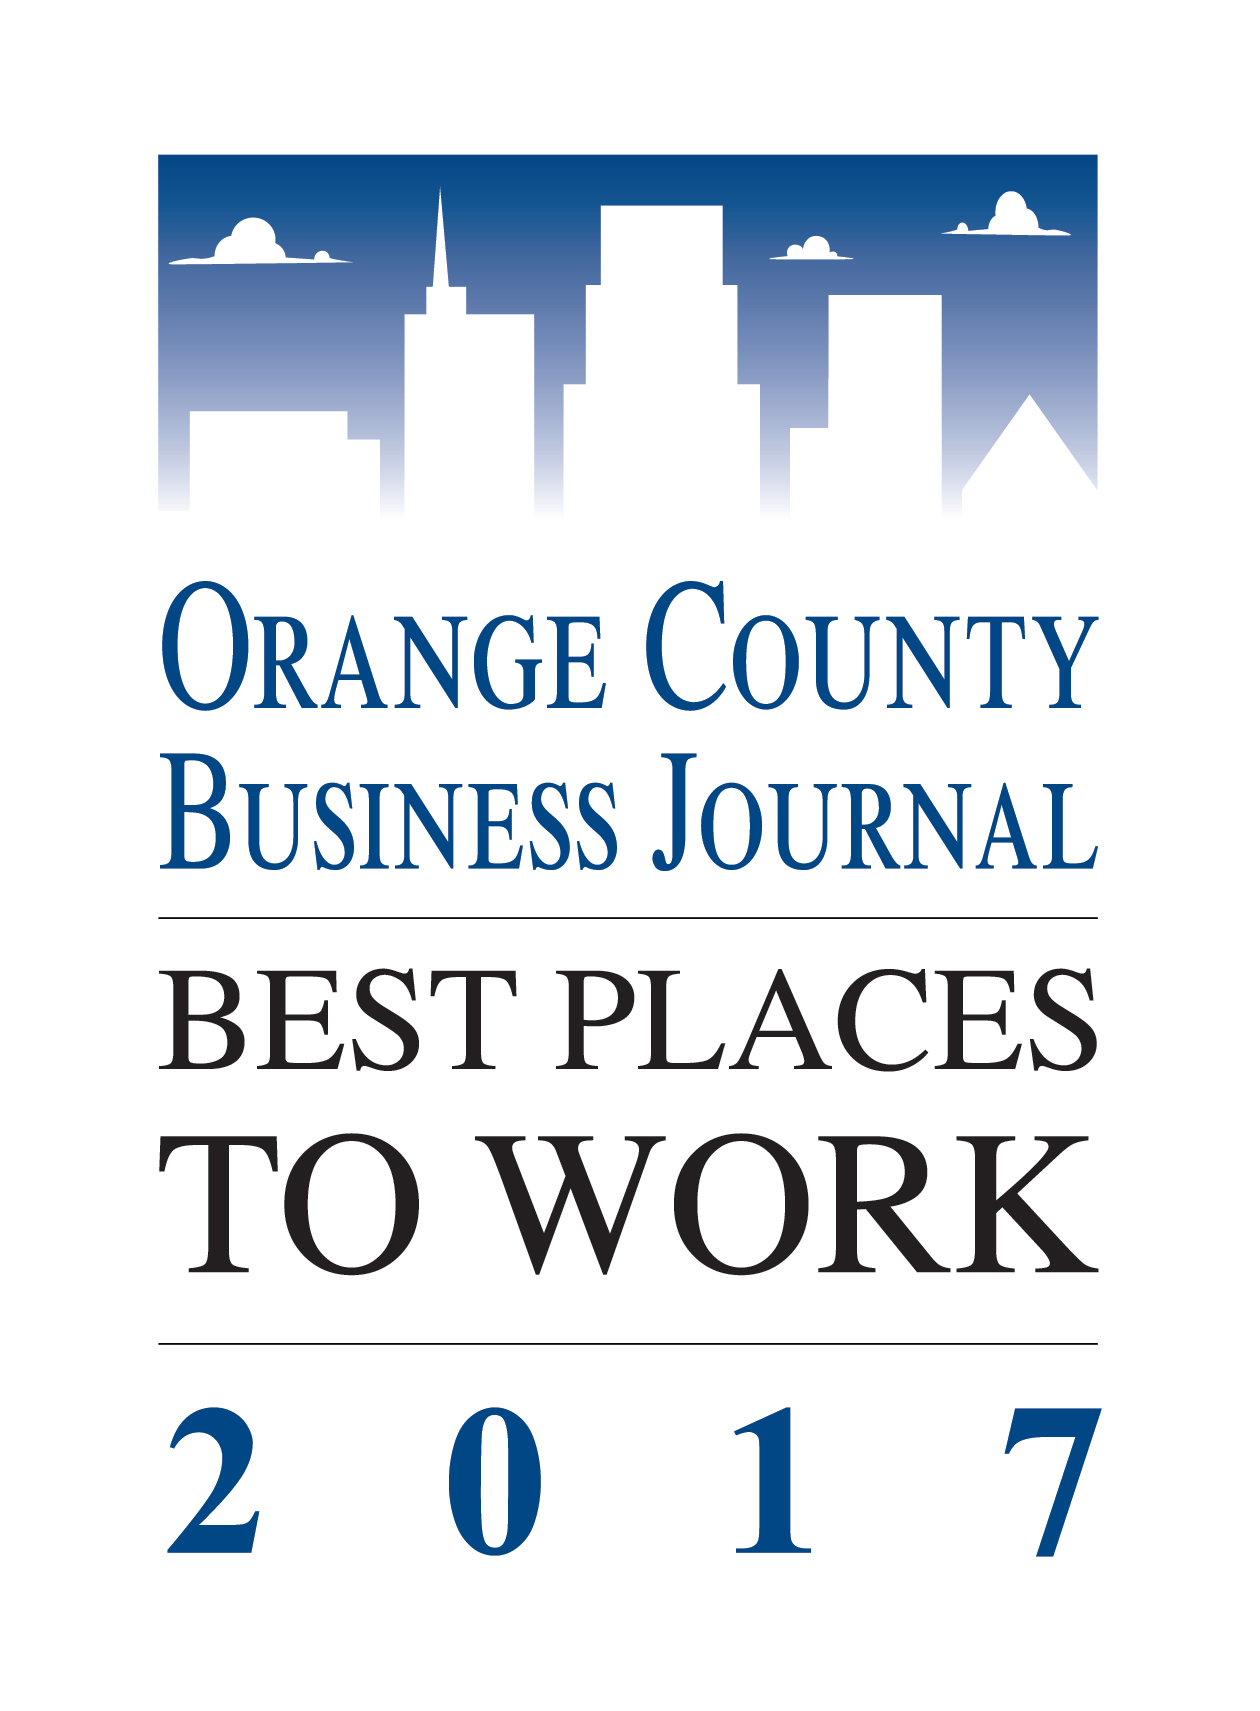 best place to work award logo 2017